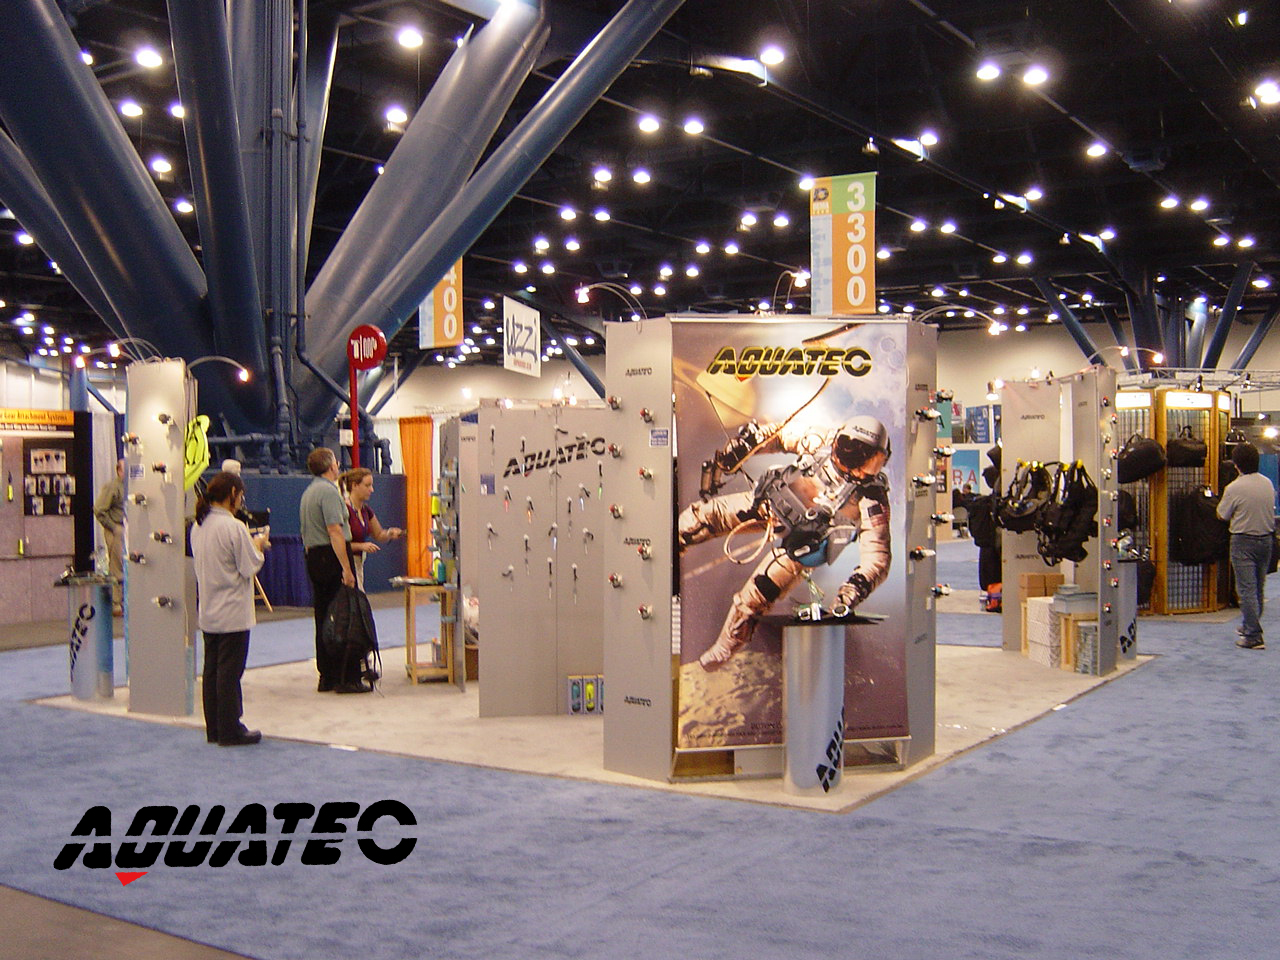 Scuba_Aquatec_DemaShow